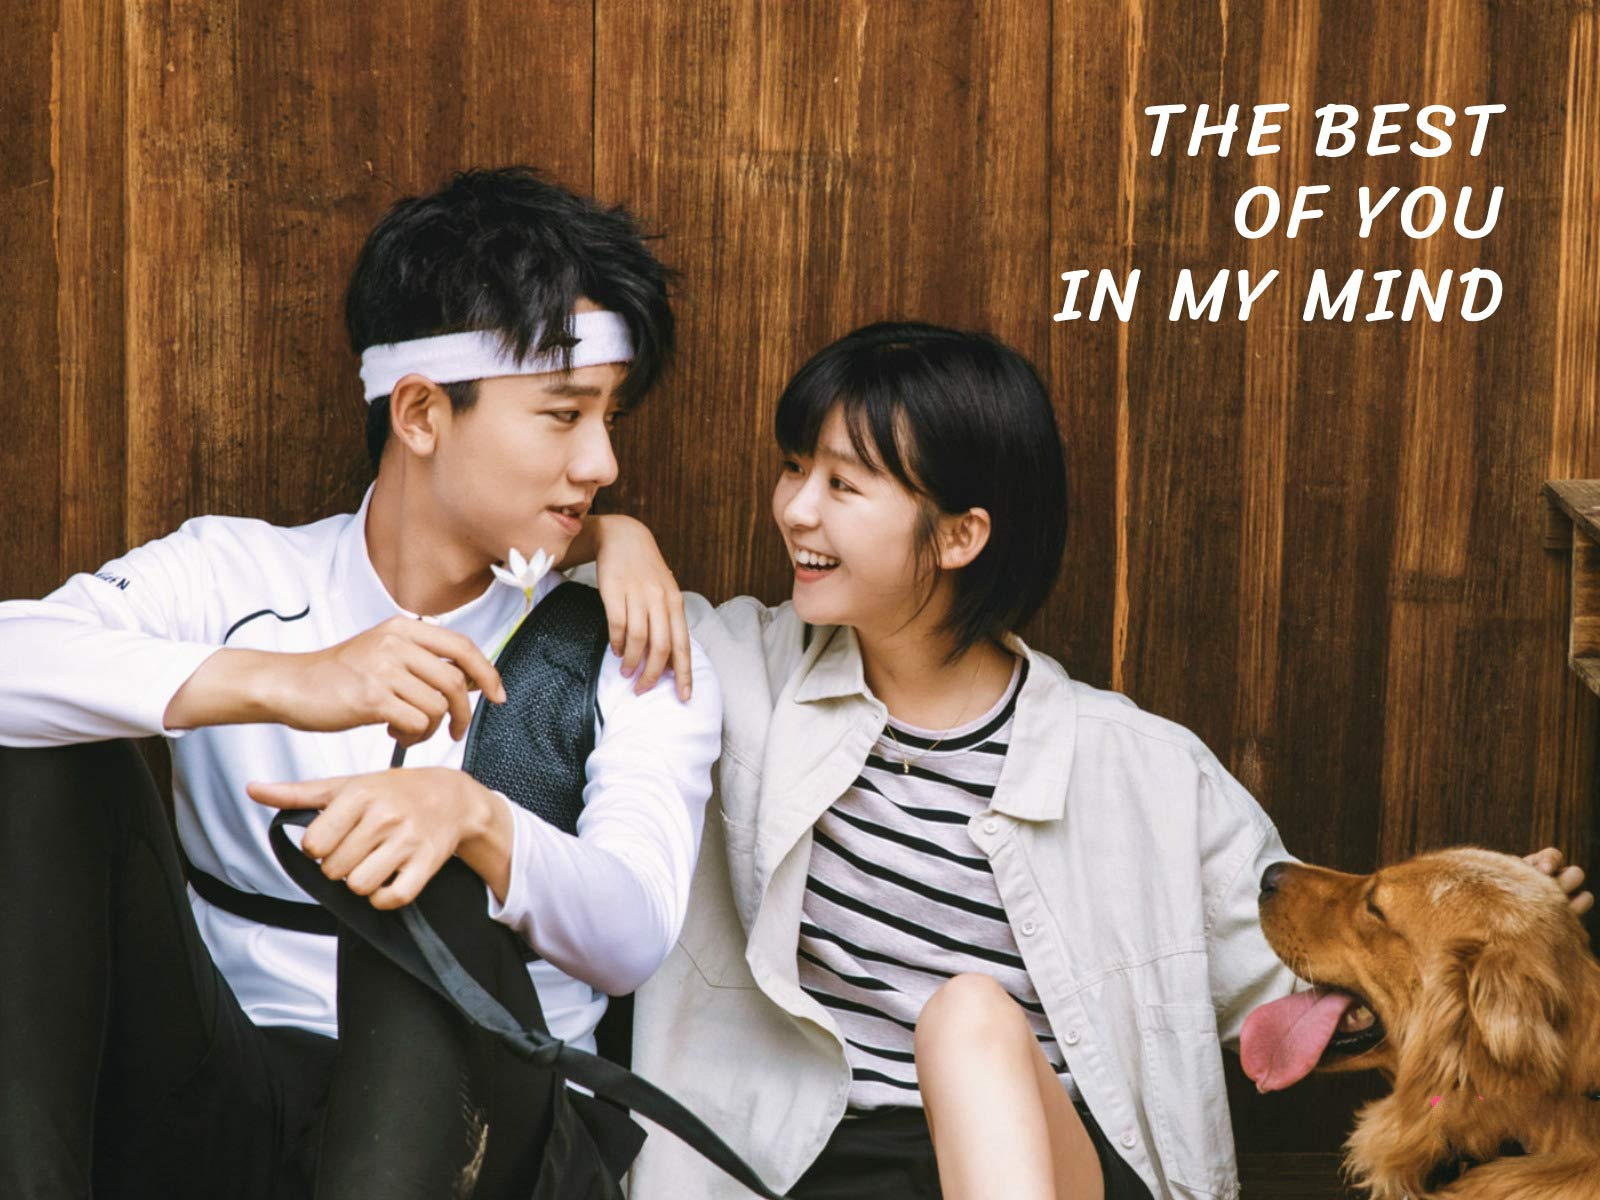 The Best Of You In My Mind - Season 1